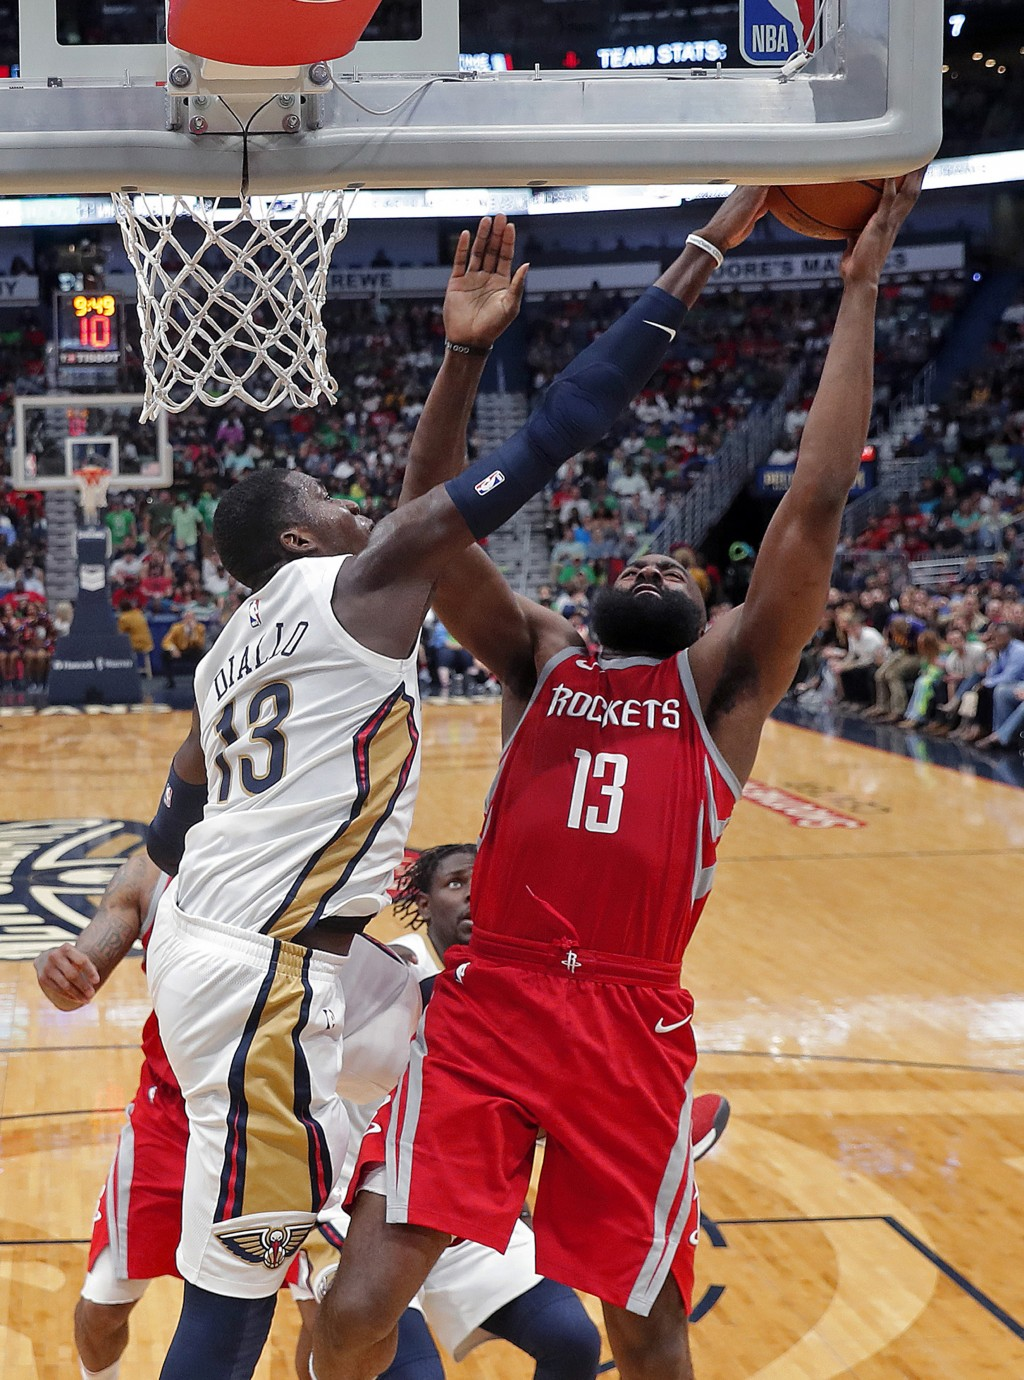 New Orleans Pelicans forward Cheick Diallo (13) blocks a shot by Houston Rockets guard James Harden during the second half of an NBA basketball game i...